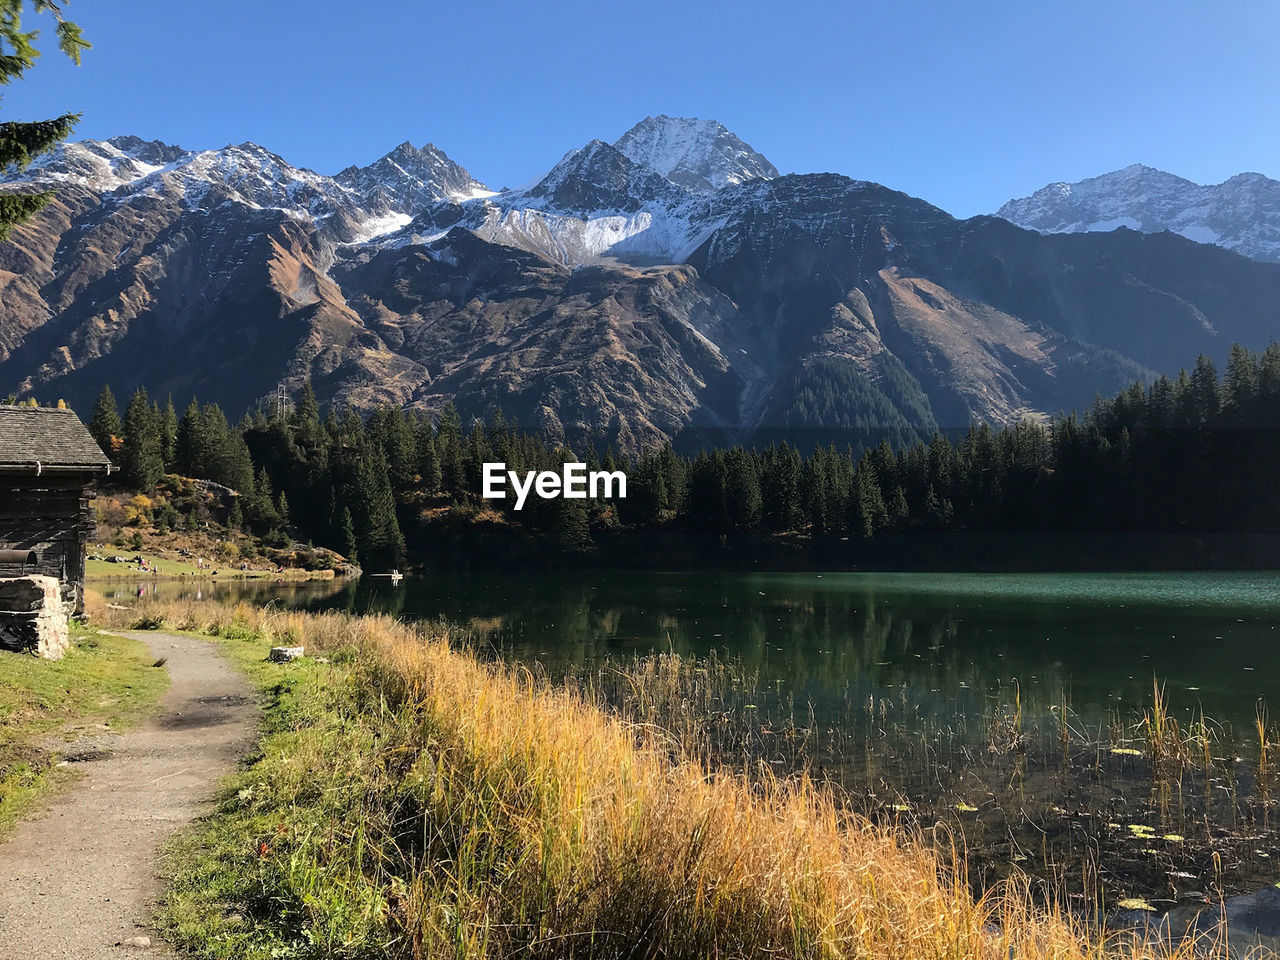 mountain, beauty in nature, tranquil scene, scenics - nature, tranquility, sky, plant, water, lake, mountain range, nature, no people, day, non-urban scene, tree, idyllic, reflection, environment, clear sky, outdoors, snowcapped mountain, mountain peak